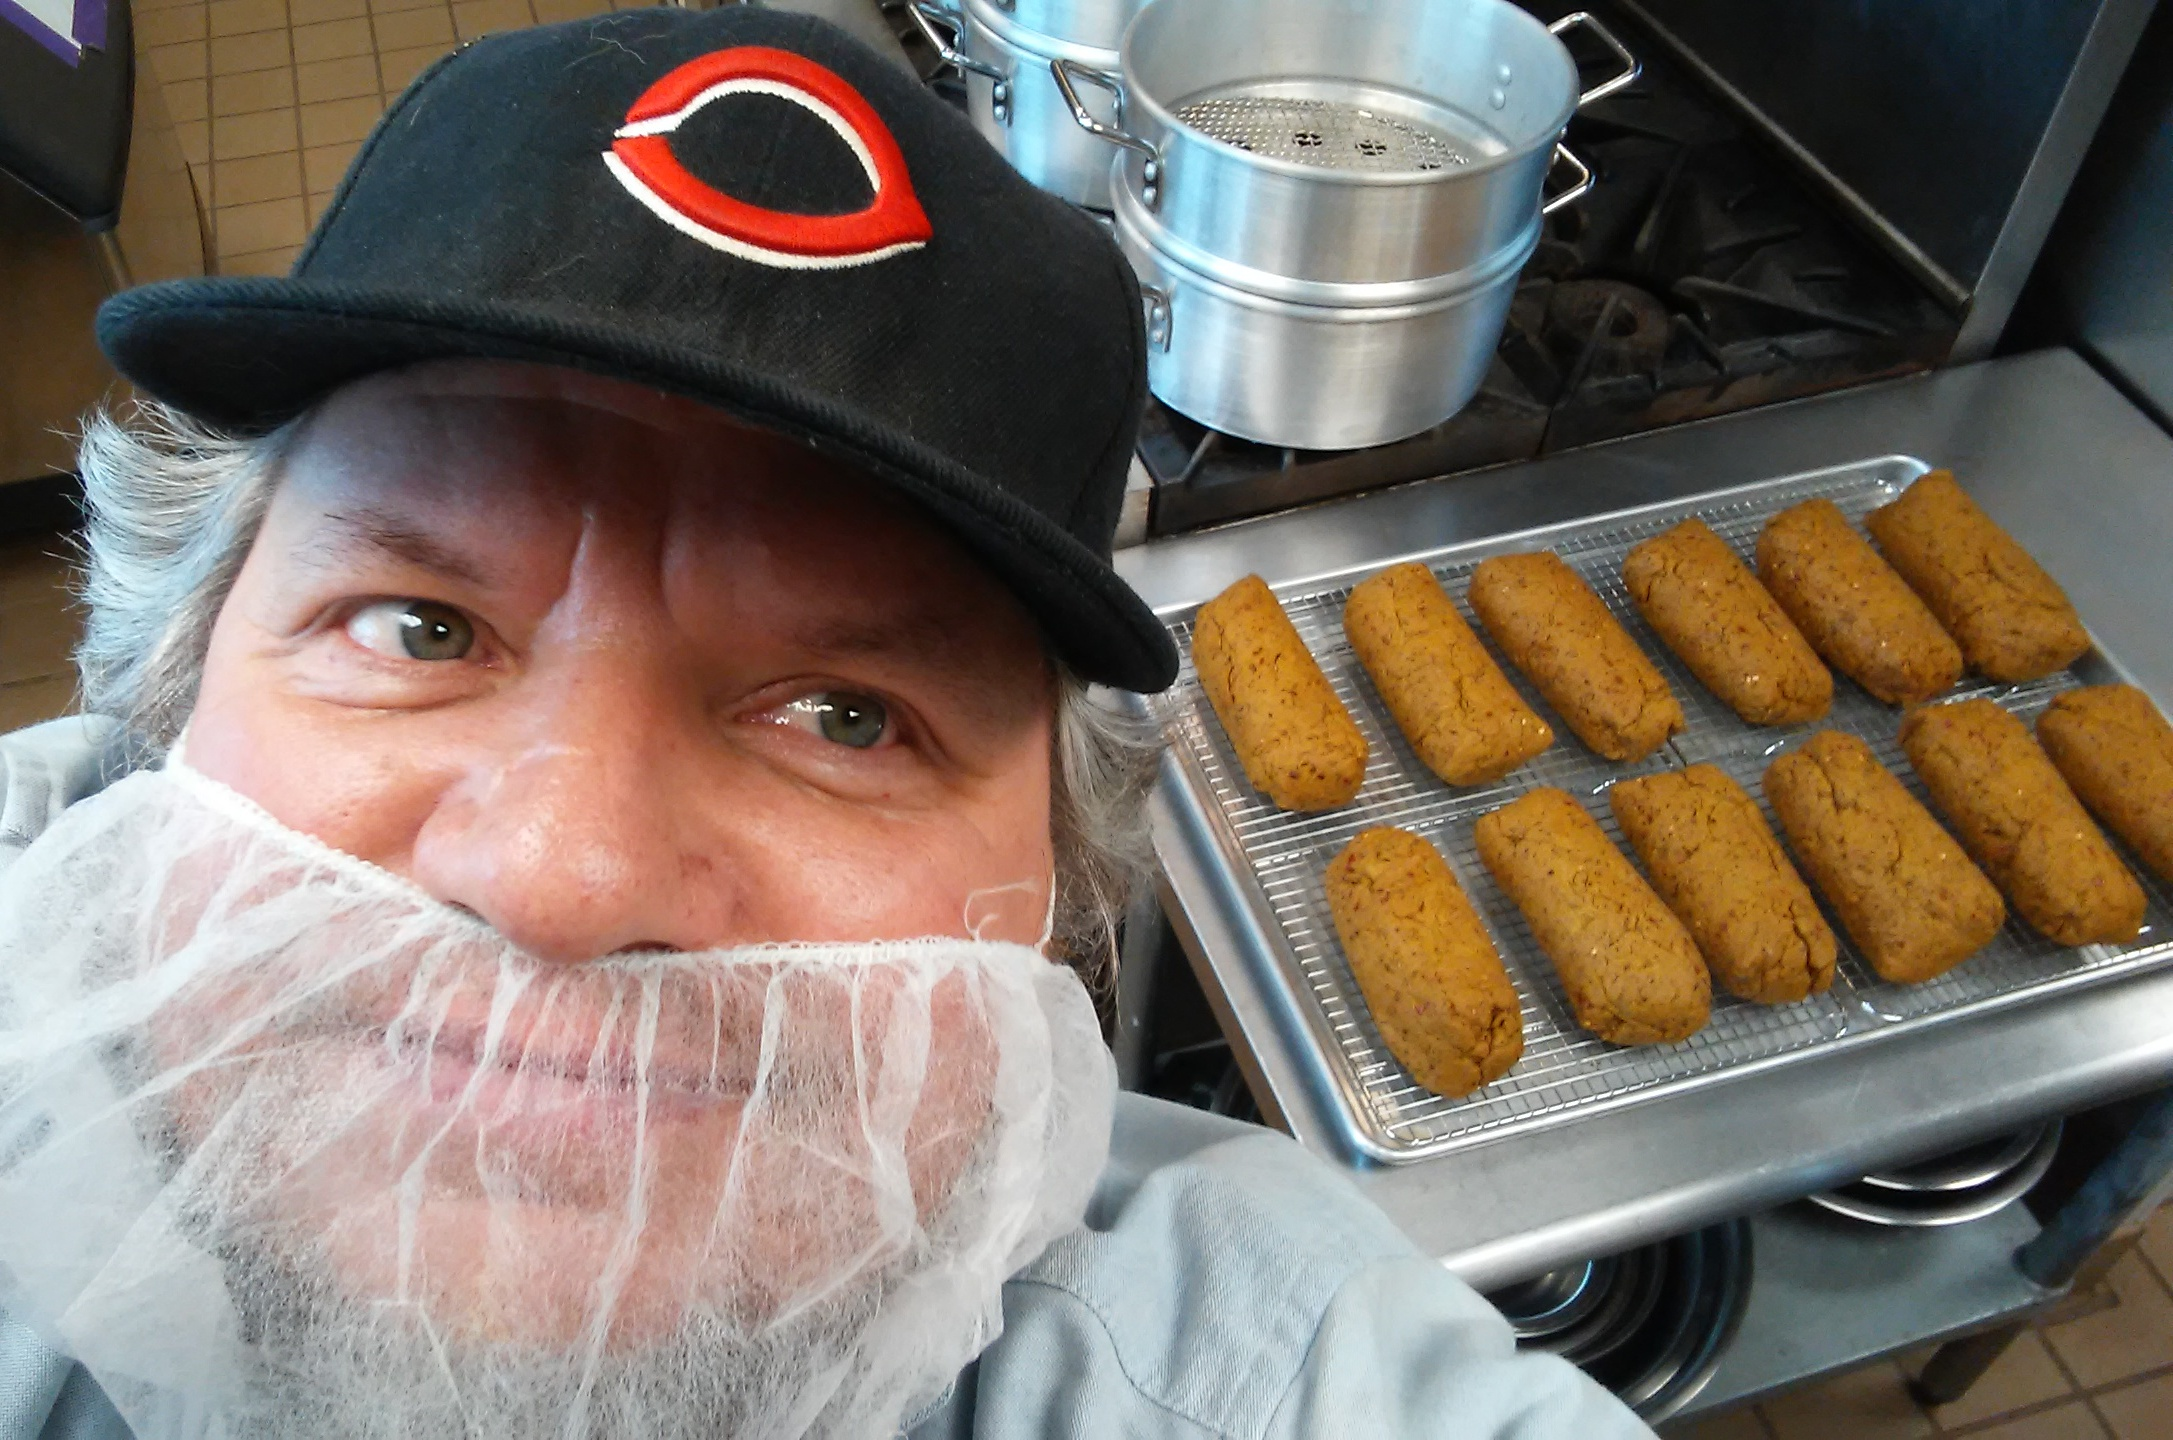 Shane in the kitchen with a fresh batch of Bangers.